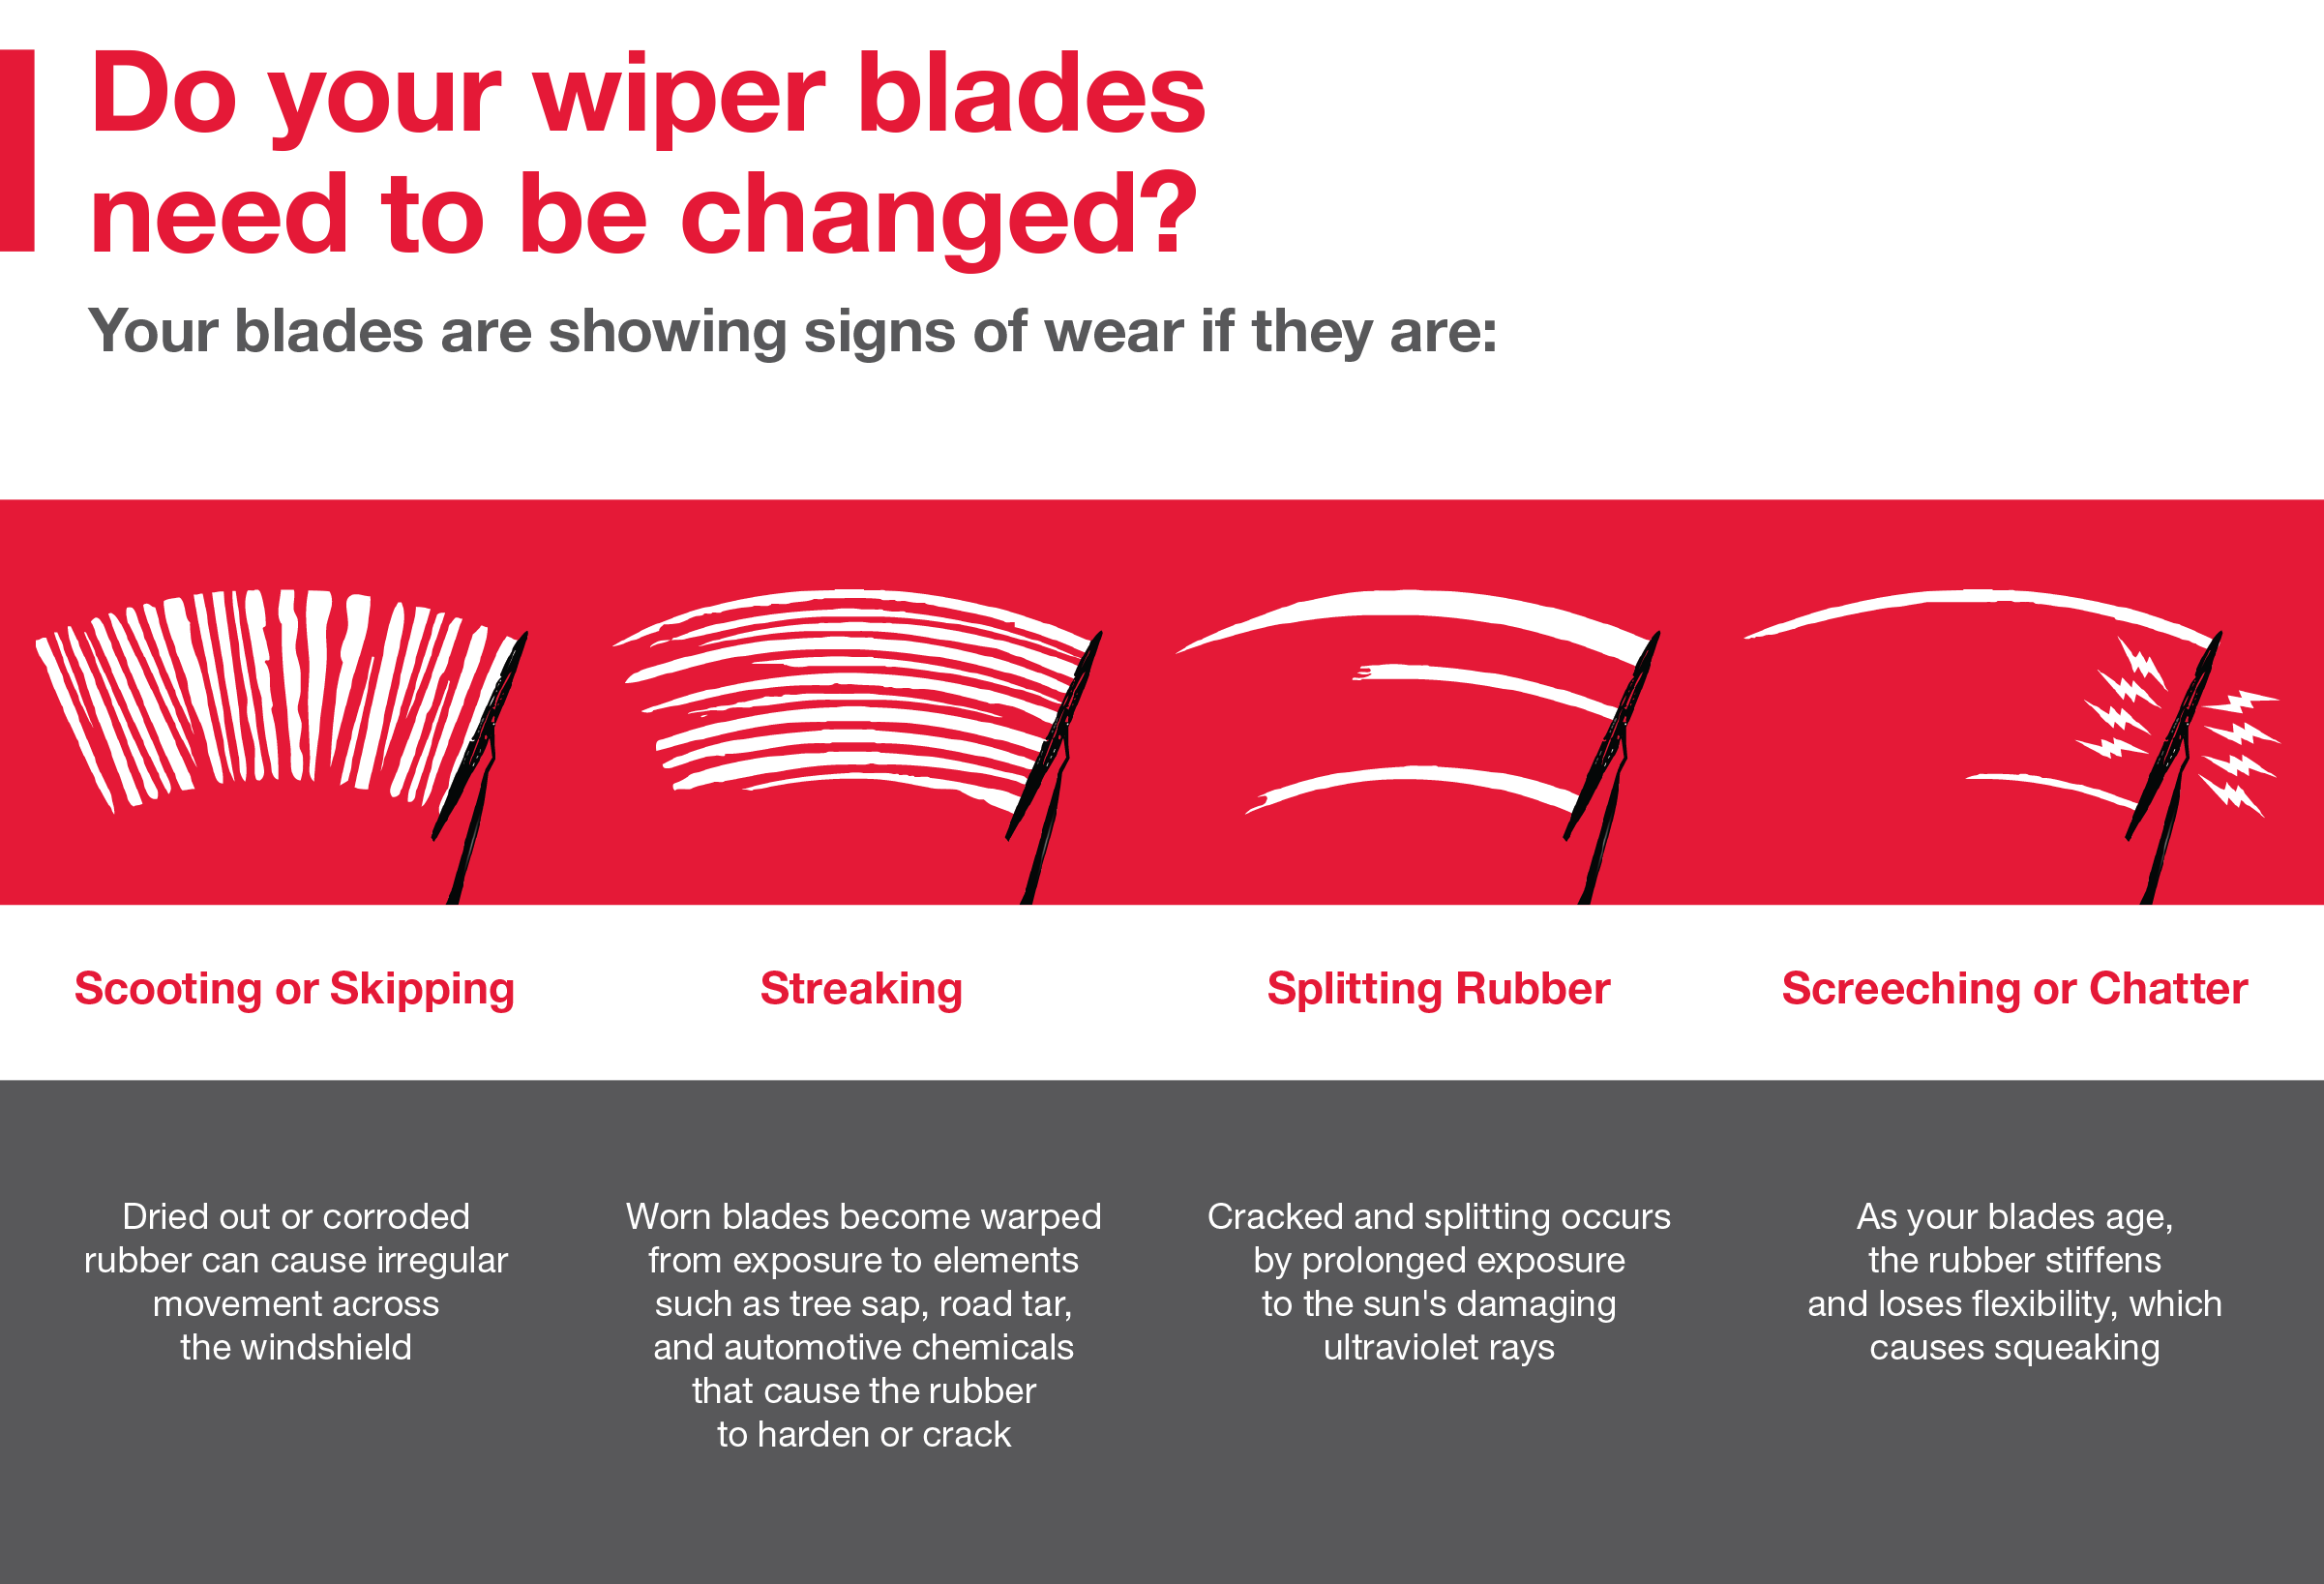 Do your wiper blades need to be changed? Call your local dealer for more info: 814.315.2181